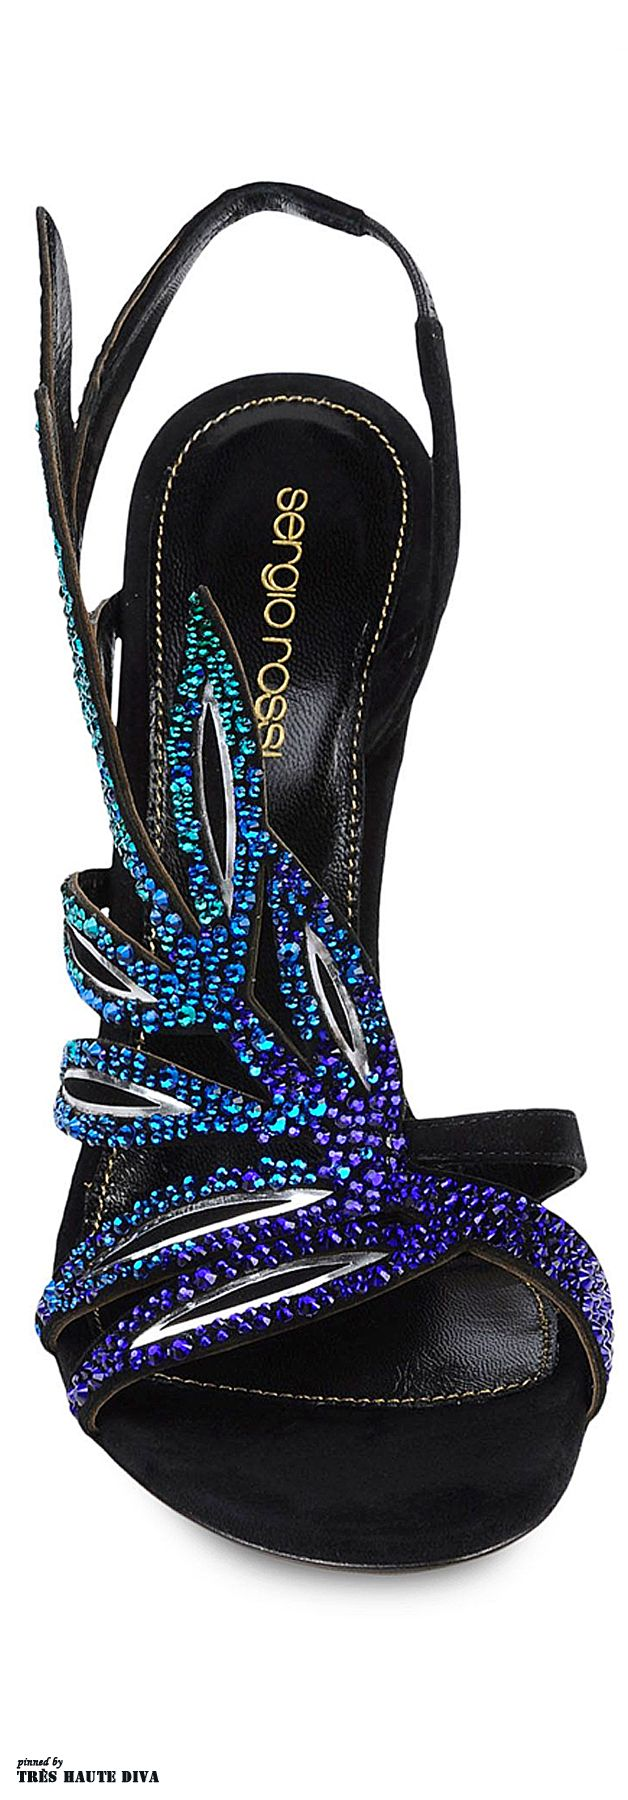 Sergio Rossi sandal laminated effect. Sueded. Rhinestone detailing. Leather sole. Spike heel.